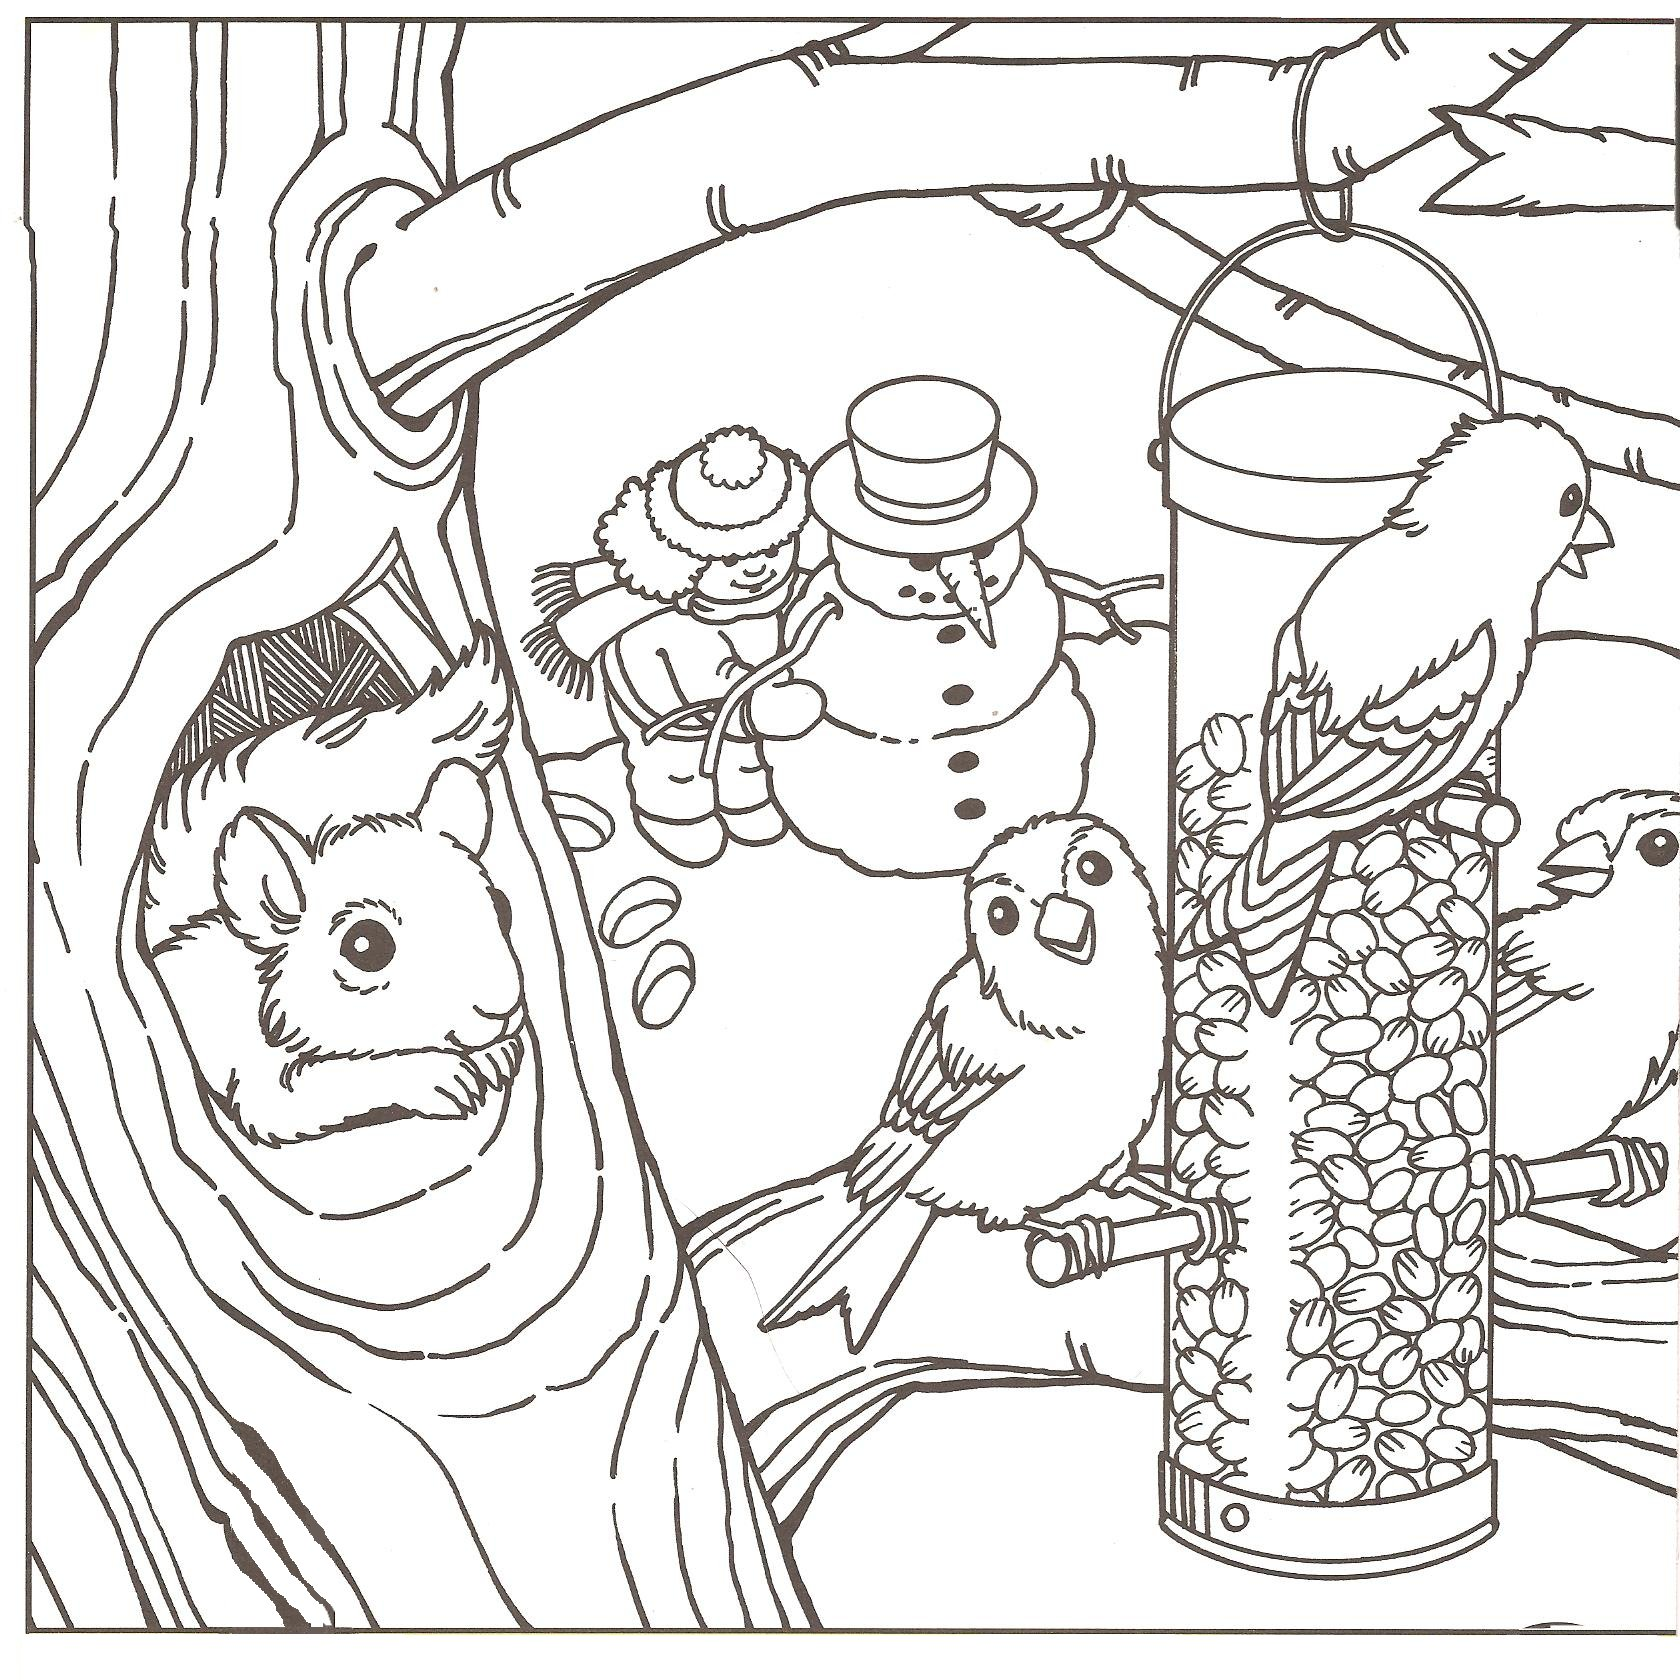 Winter Coloring Pages For Toddlers At Getdrawings Com Free For